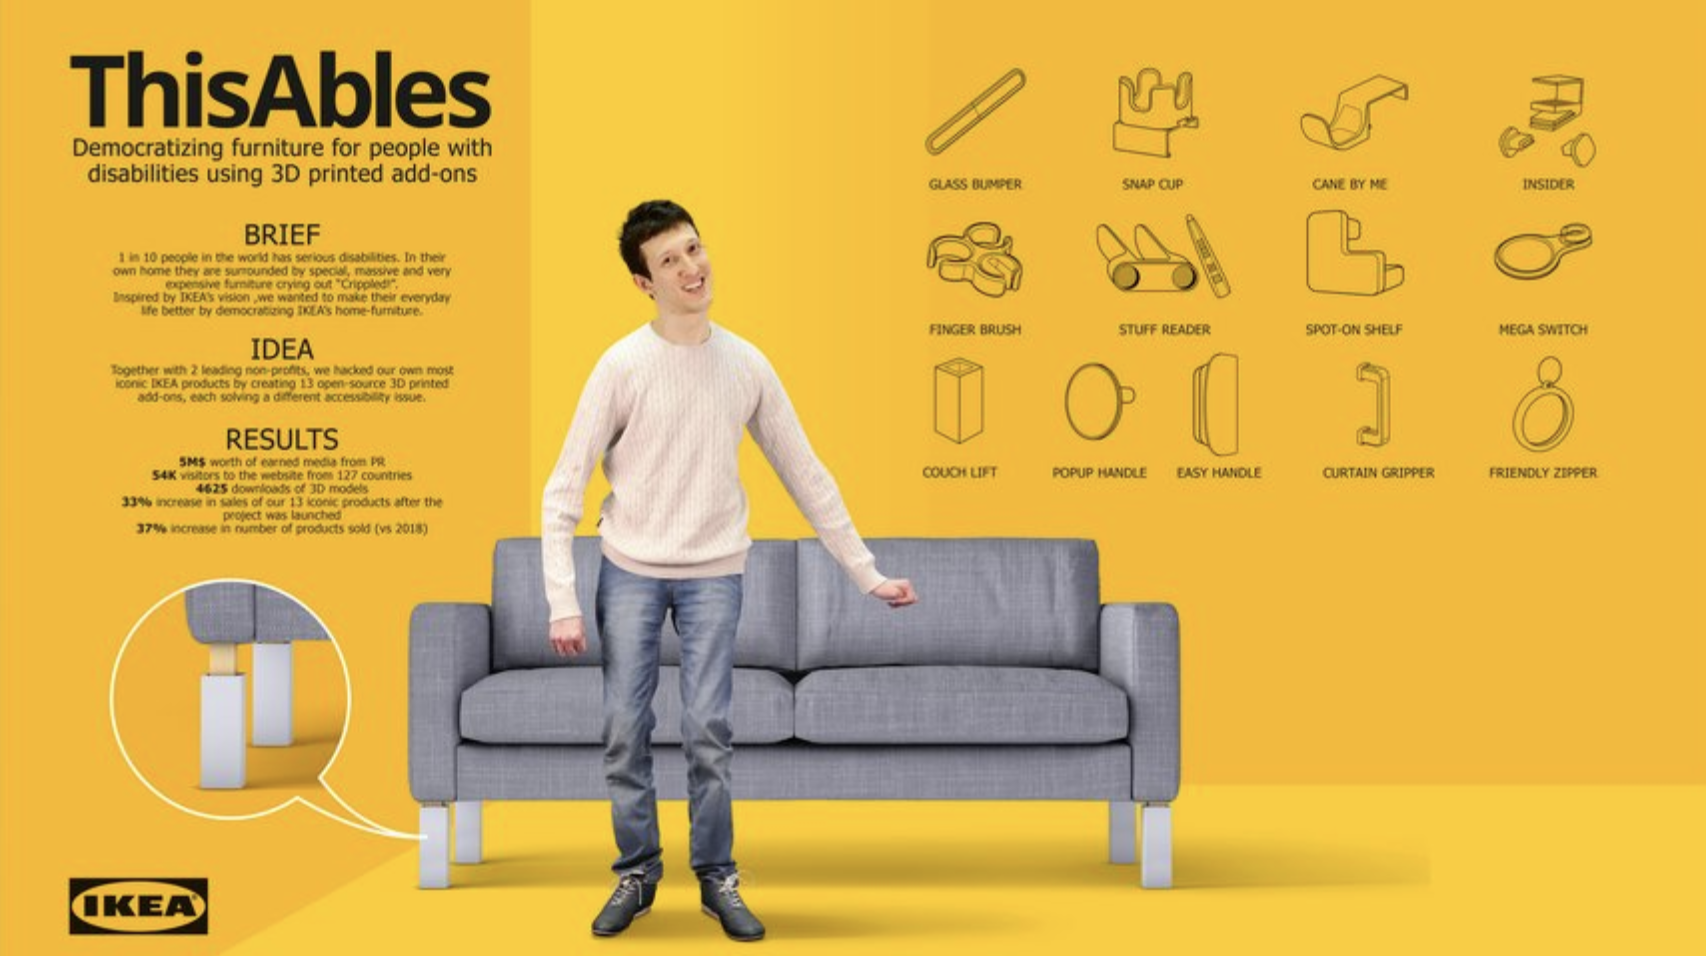 IKEA ThisAbles